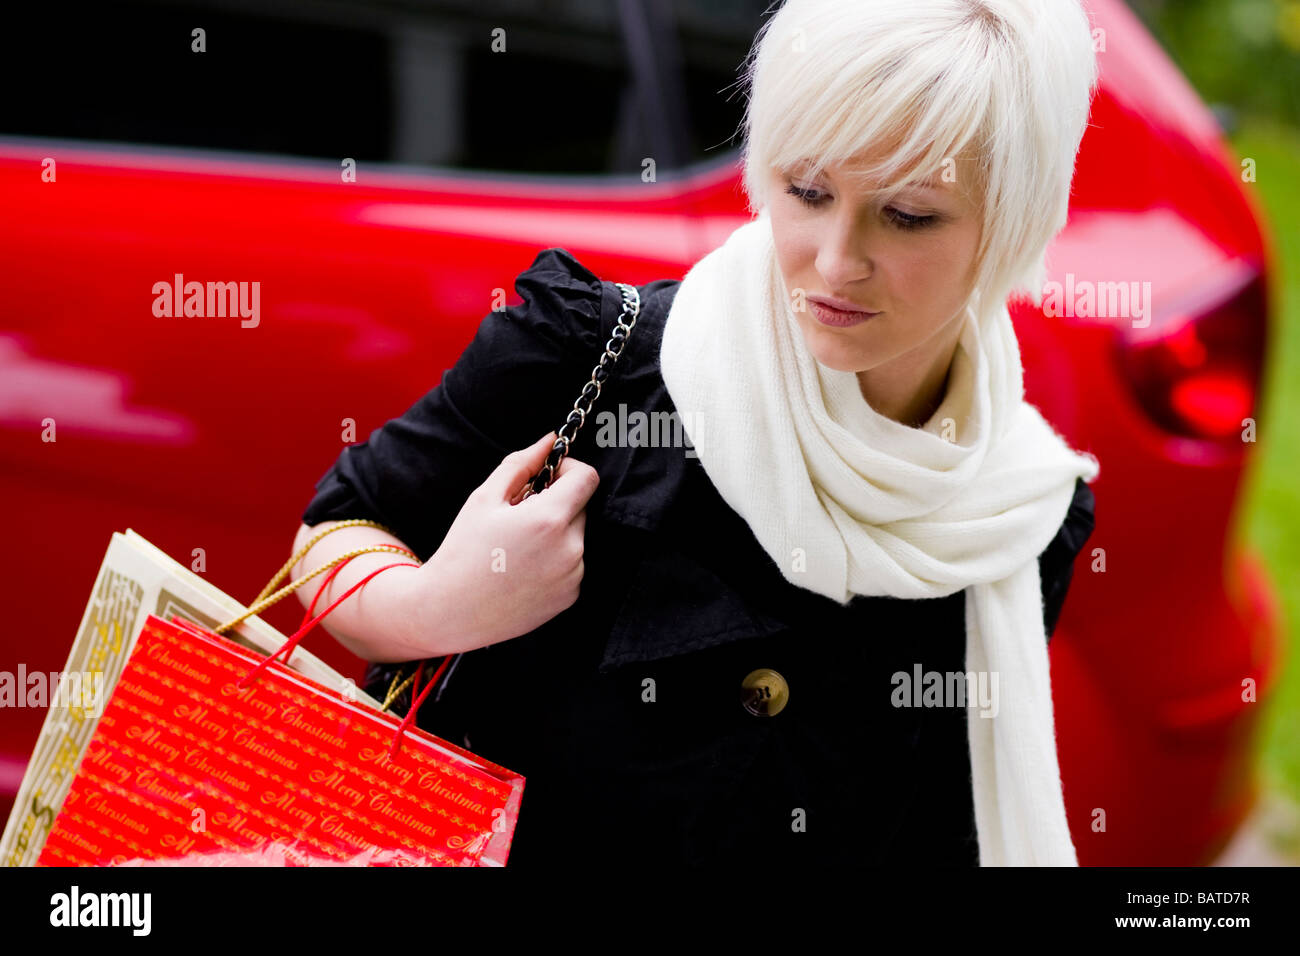 Girl looking depressed with shopping bags - Stock Image